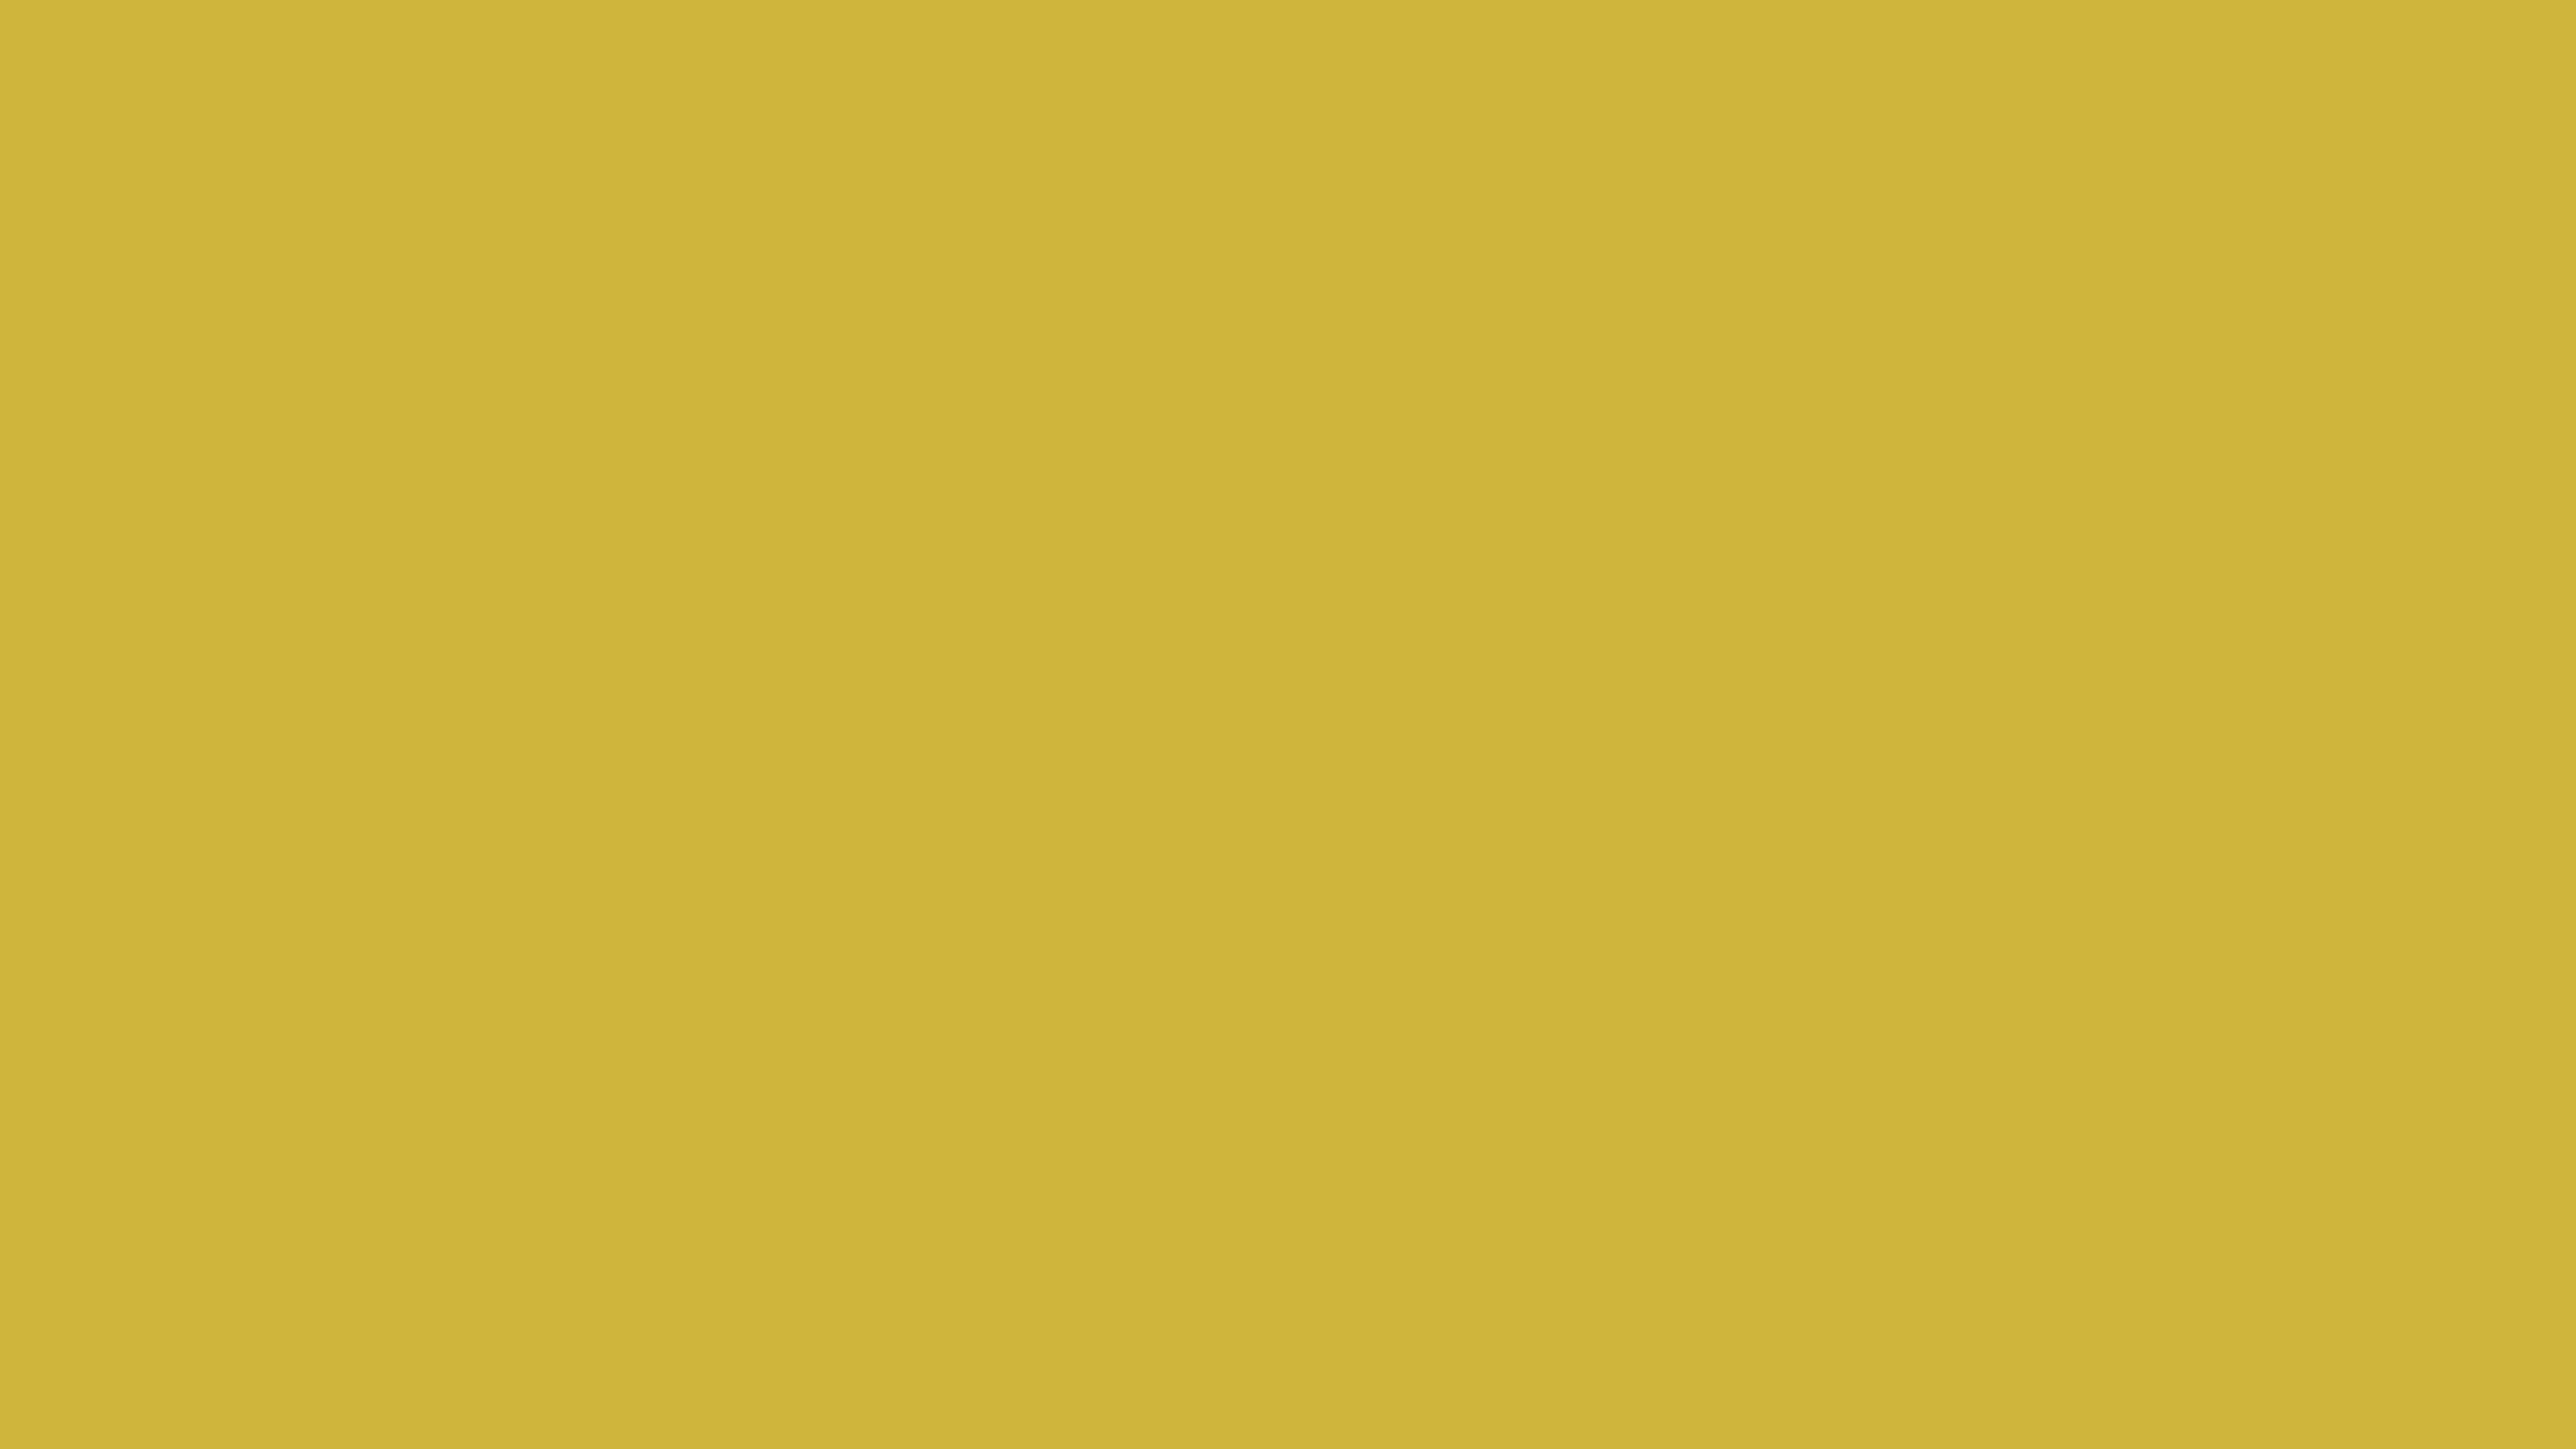 4096x2304 Old Gold Solid Color Background